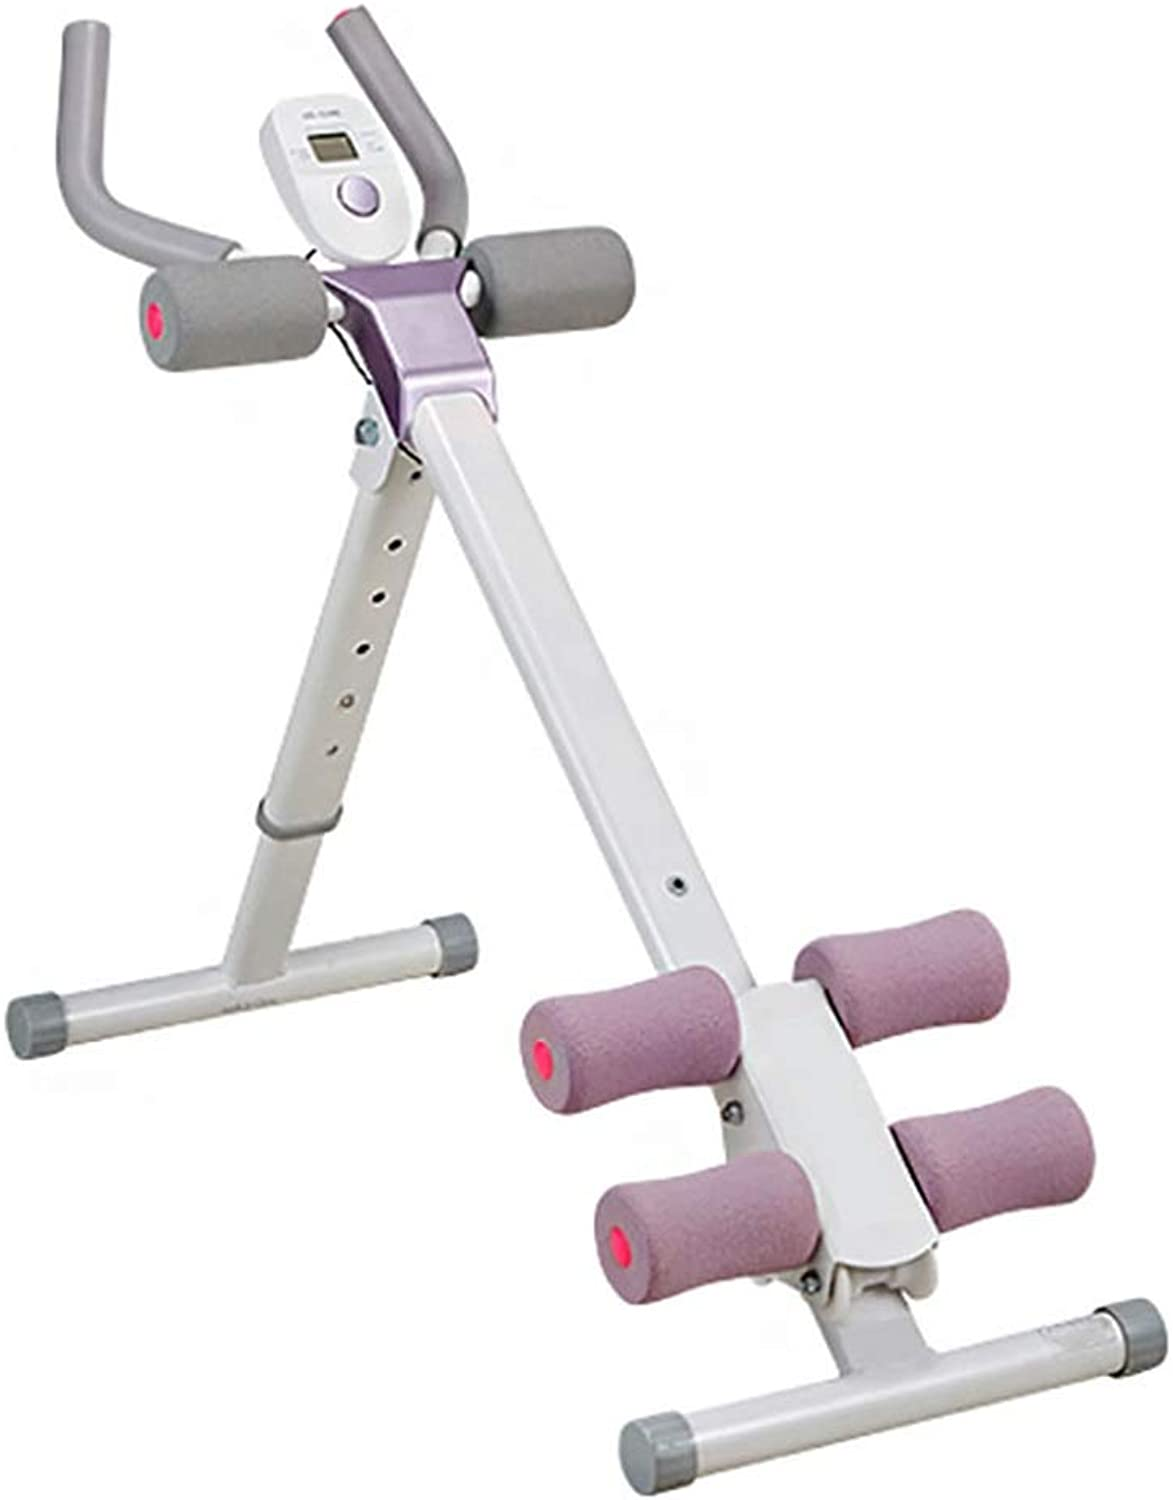 Foldable Abdominal Trainer Abdominal Back and Hip Muscle Trainer  Led Display  Adjustable Height